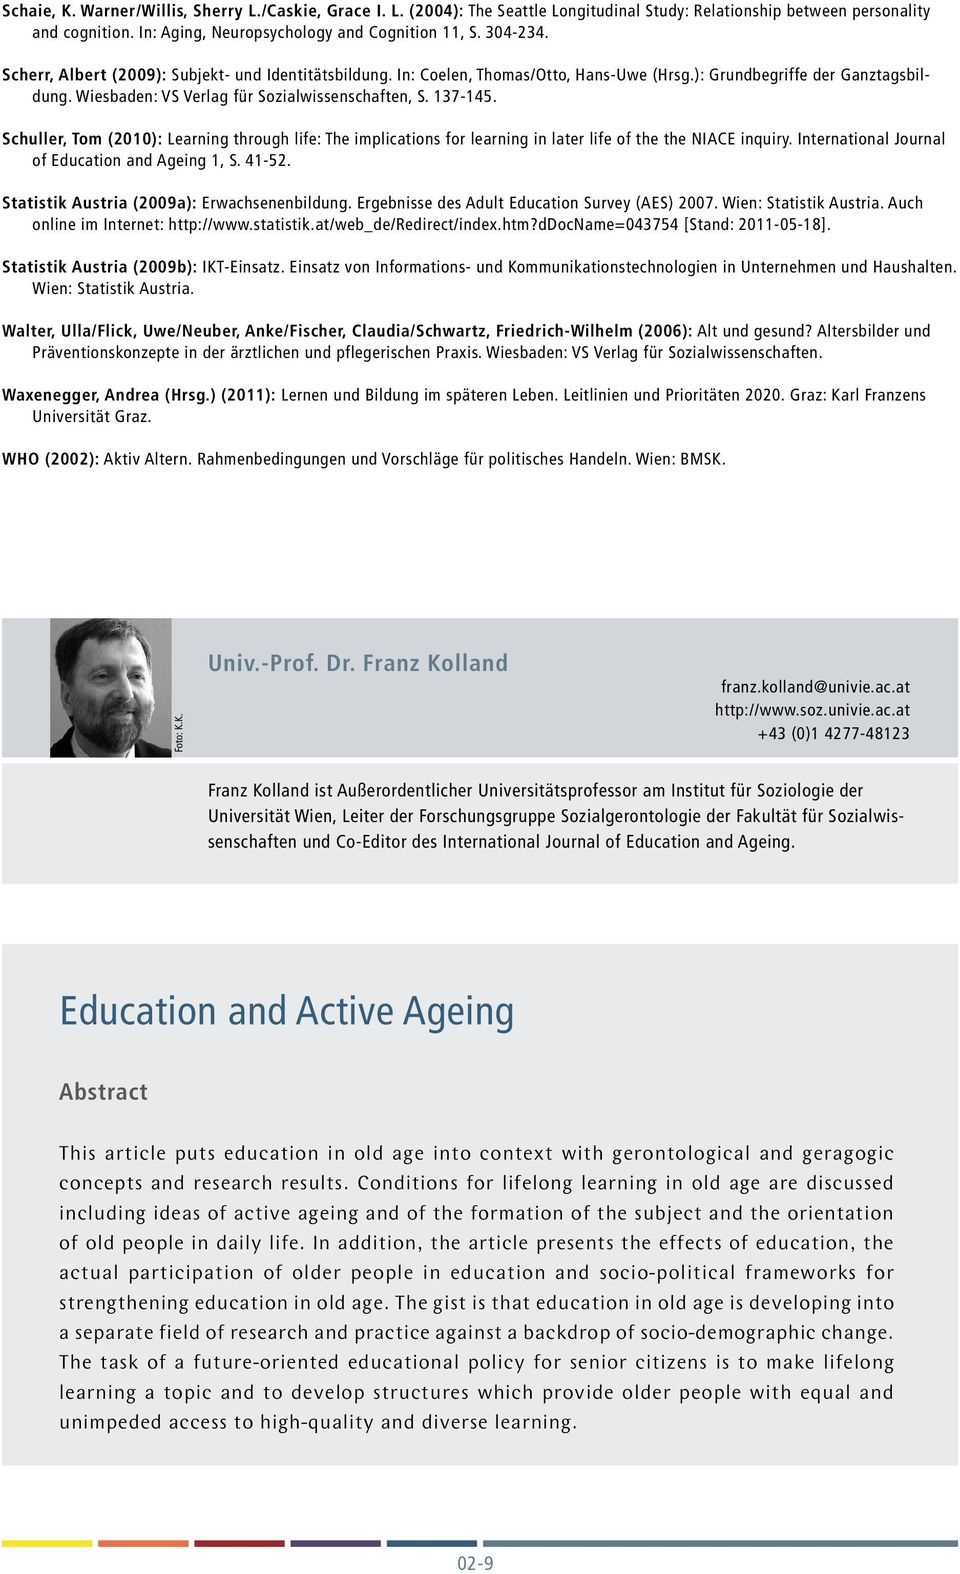 Schuller, Tom (2010): Learning through life: The implications for learning in later life of the the NIACE inquiry. International Journal of Education and Ageing 1, S. 41-52.